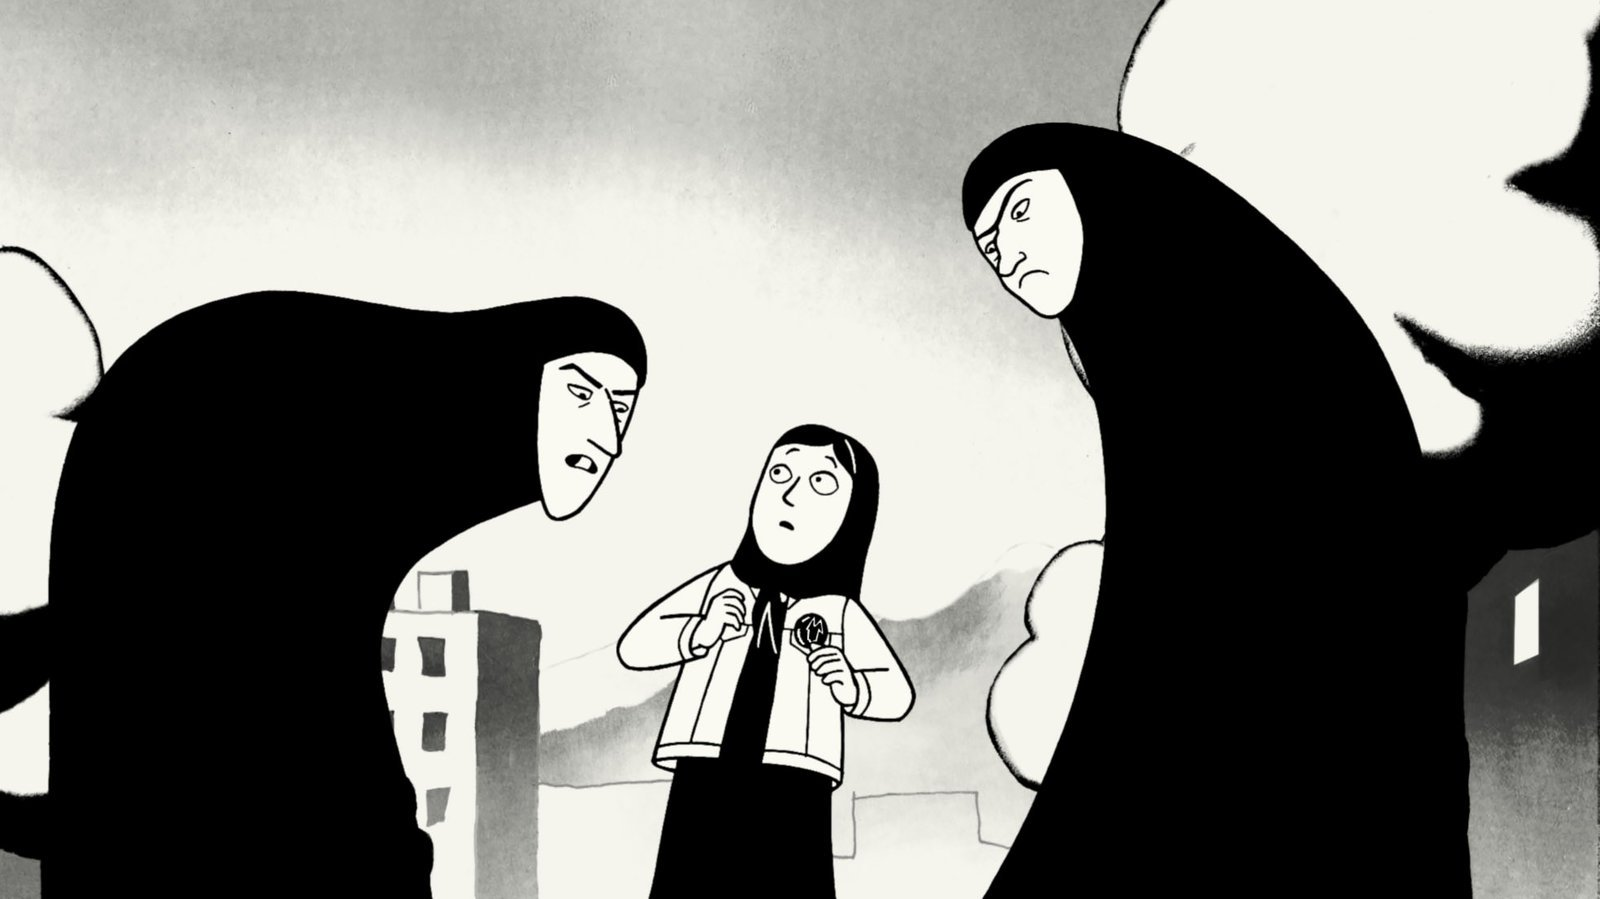 persepolis-watching-recommendation-videoSixteenByNineJumbo1600-v3